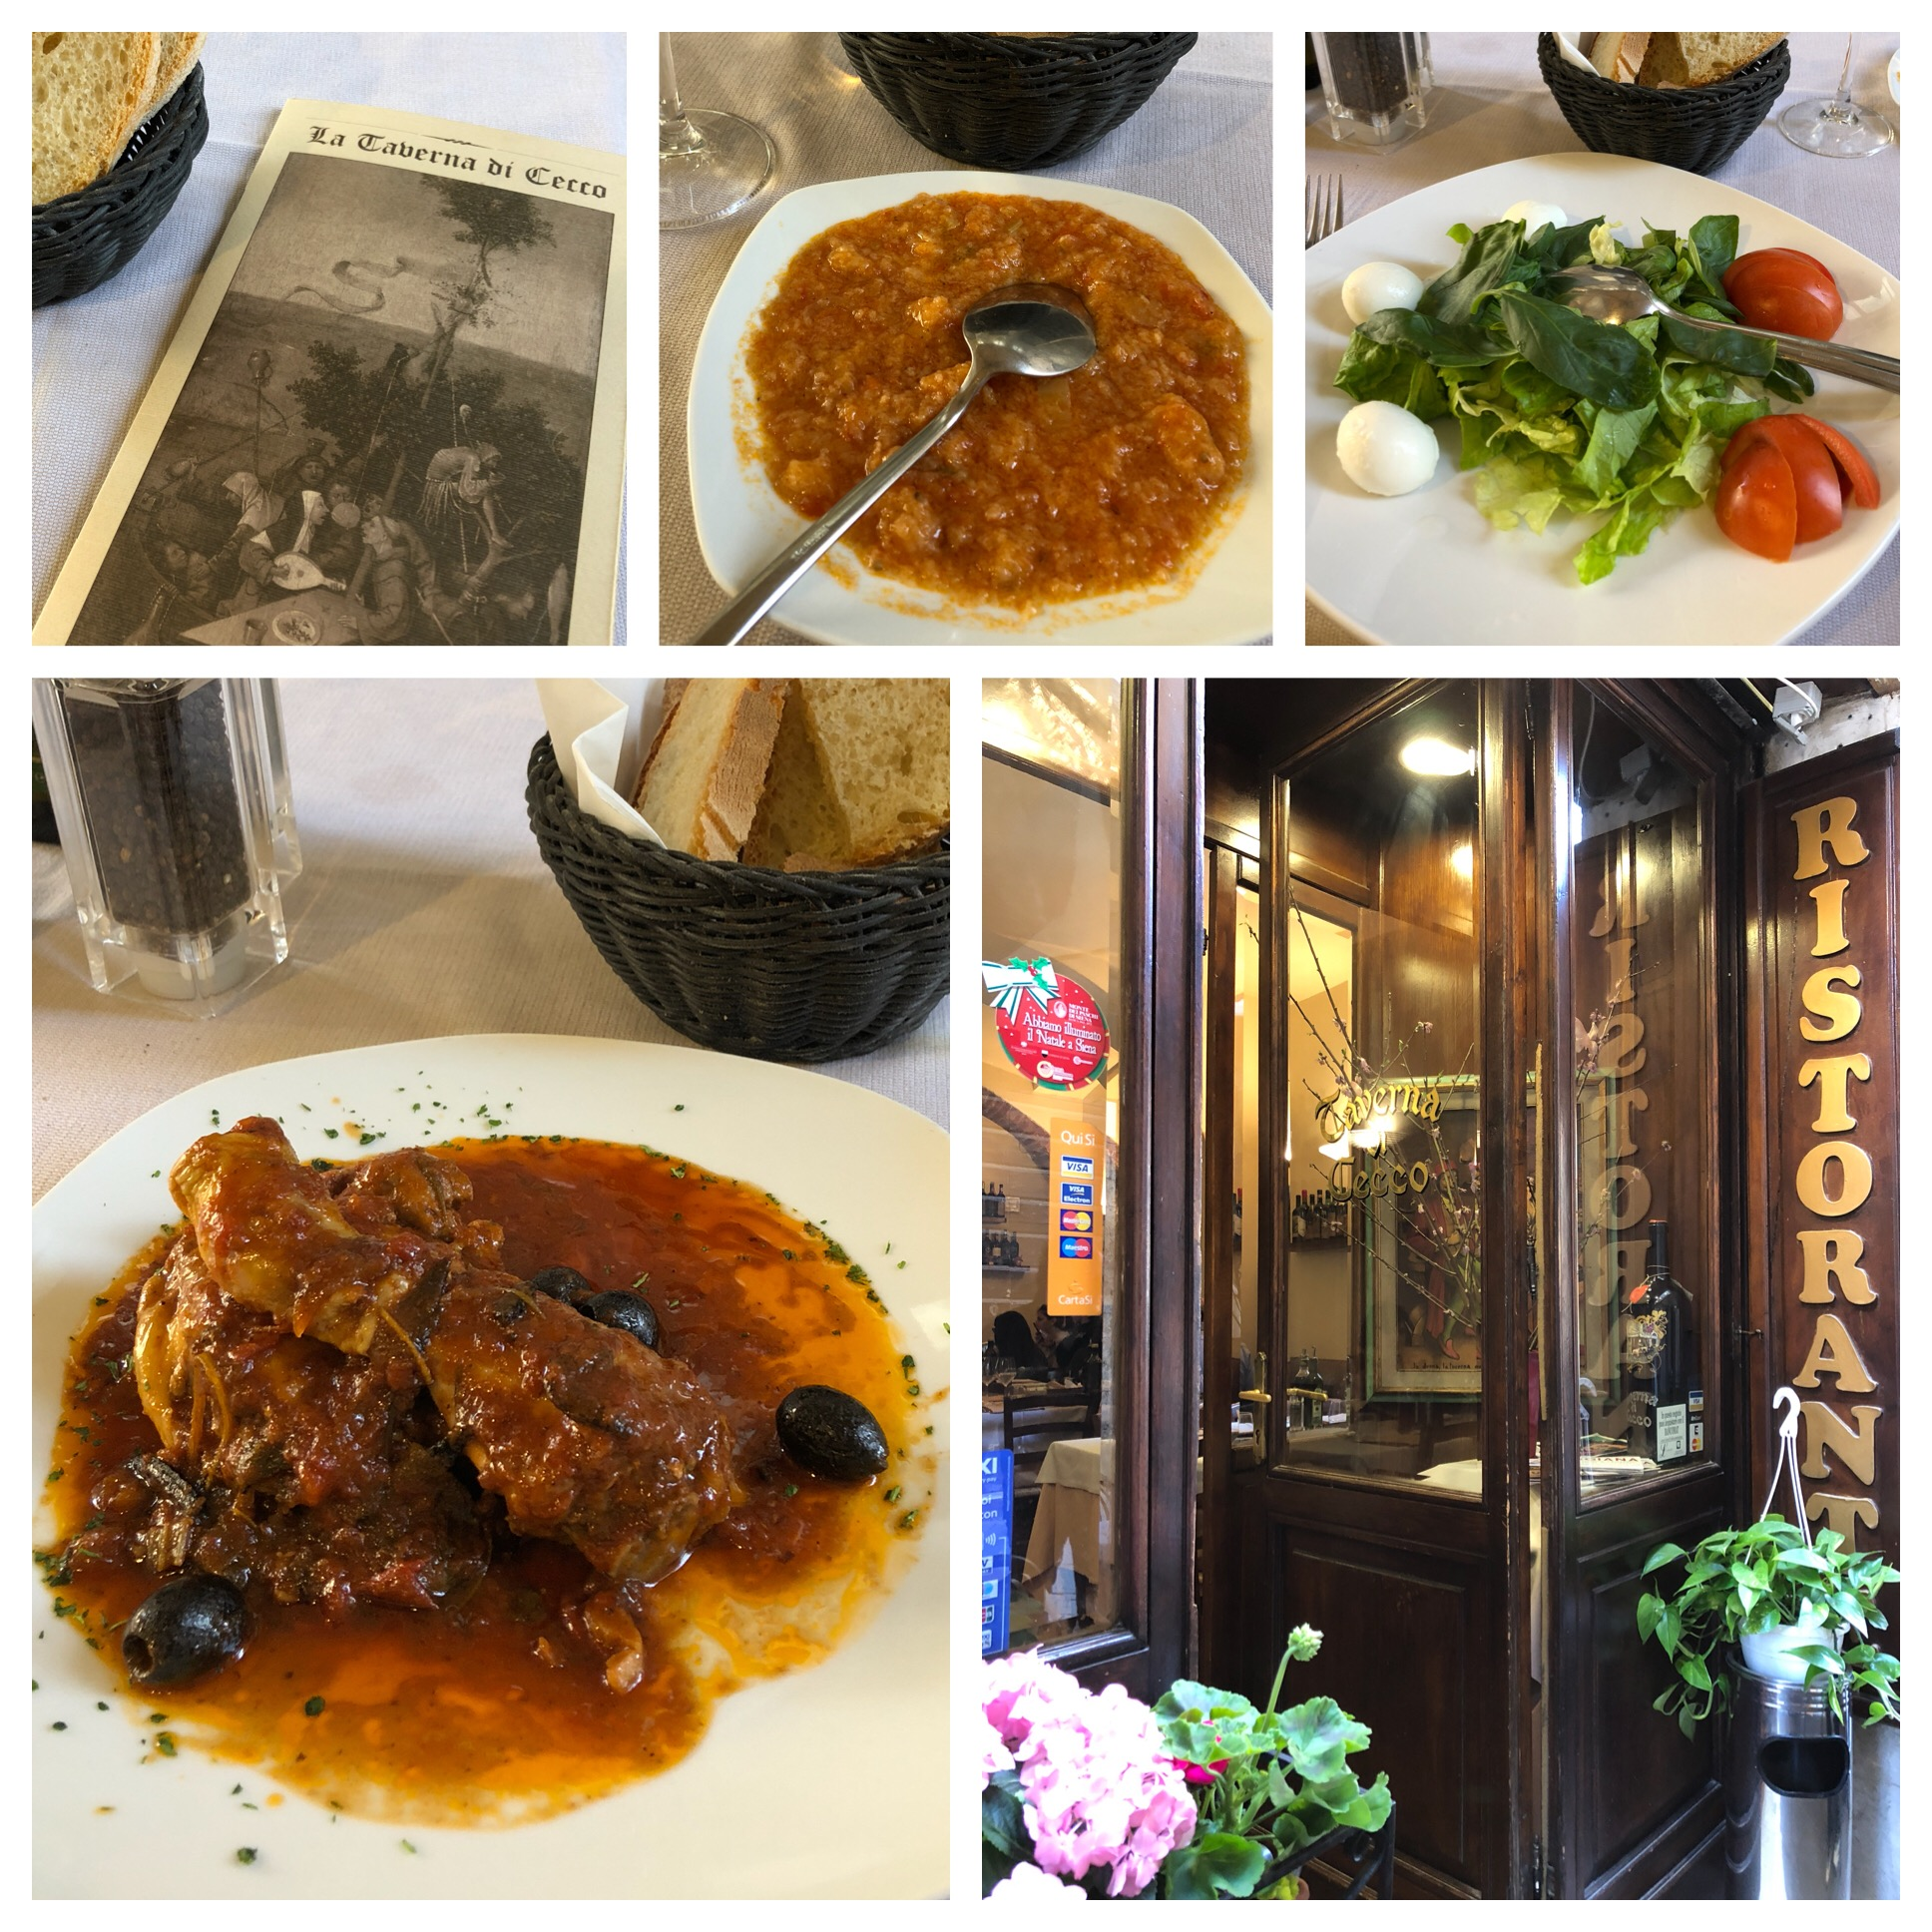 Middle pic is of a complimentary soup made from tomatoes. Caprese salad and chicken cacciatore. And a nice glass of wine! Yumm!